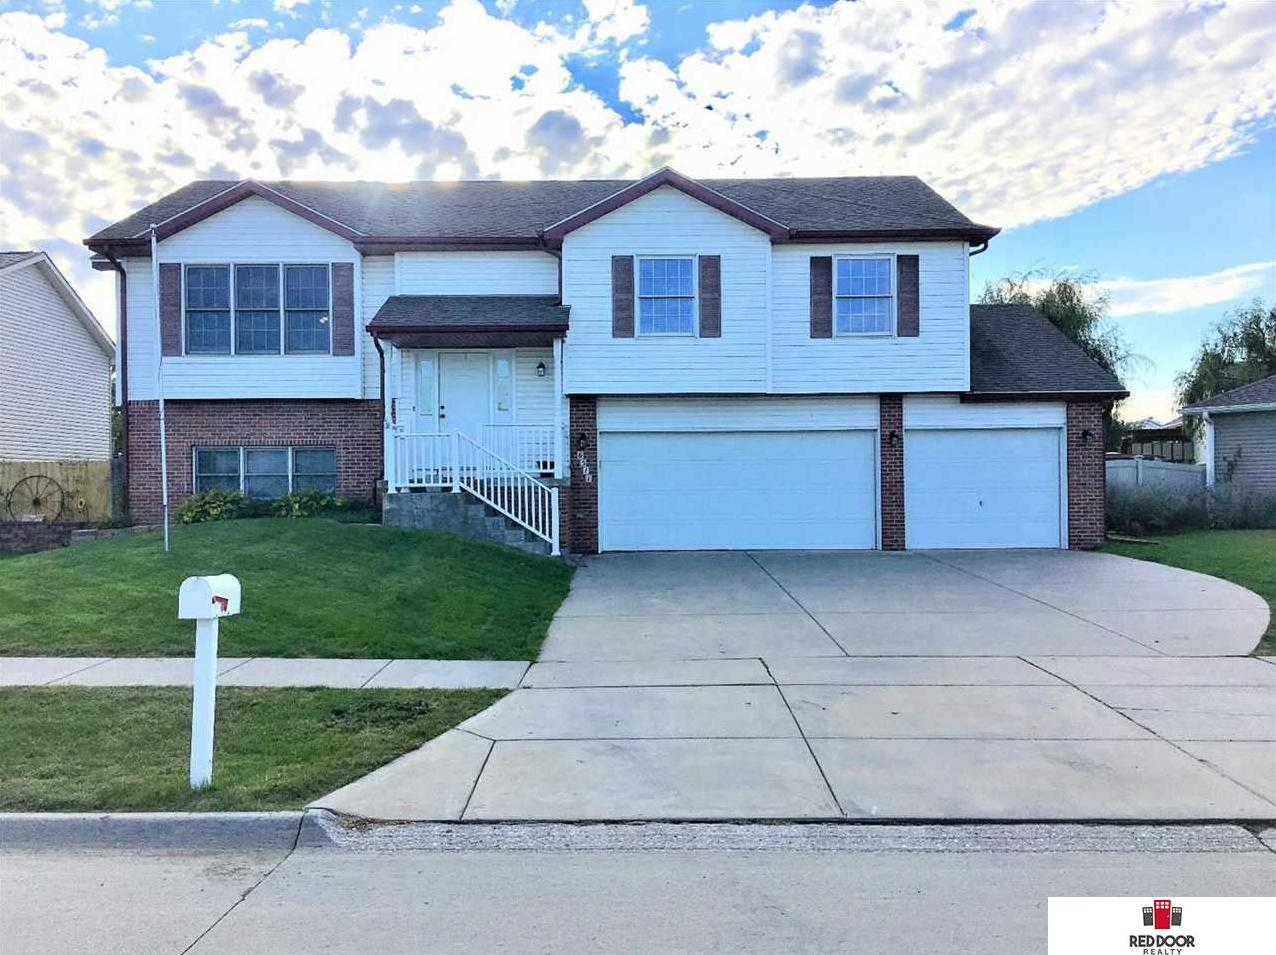 Photo of 6511 foxglove Lane Lincoln NE 68504